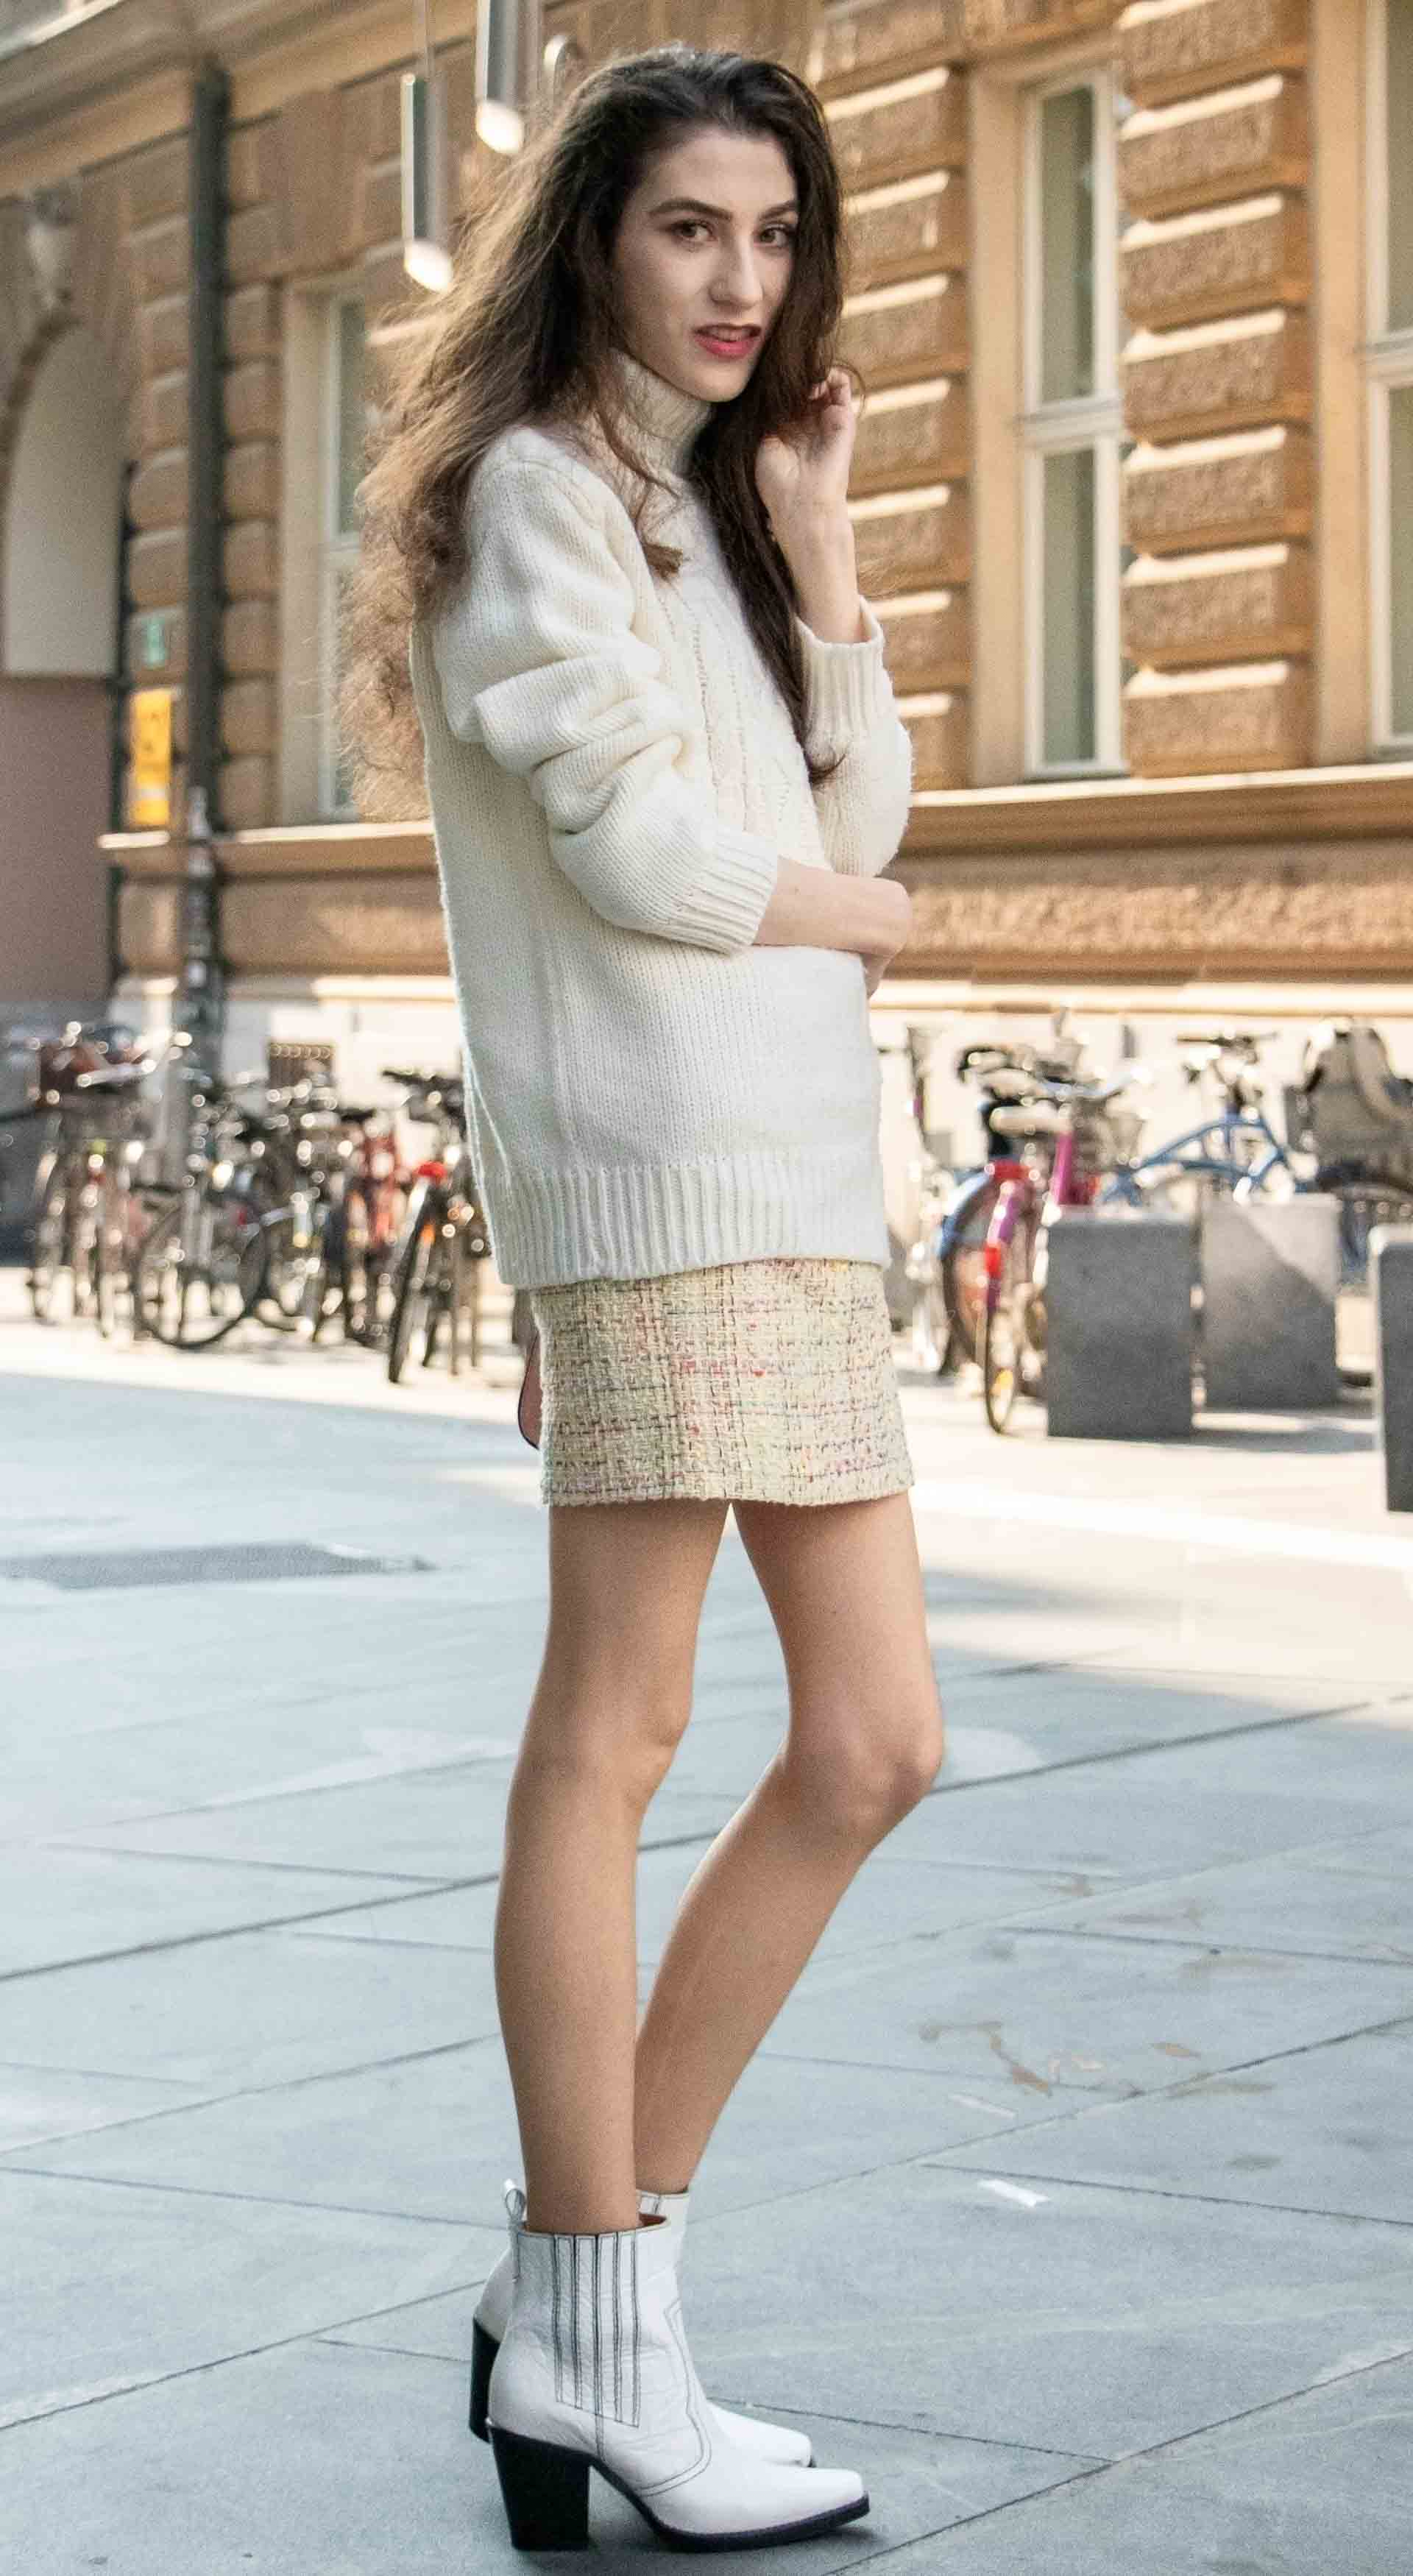 Beautiful Slovenian Fashion Blogger Veronika Lipar of Brunette from Wall wearing white Ganni Western boots, yellow tweed skirt, white turtleneck sweater, chain strap shoulder bag on the street in the morning in Ljubljana in fall